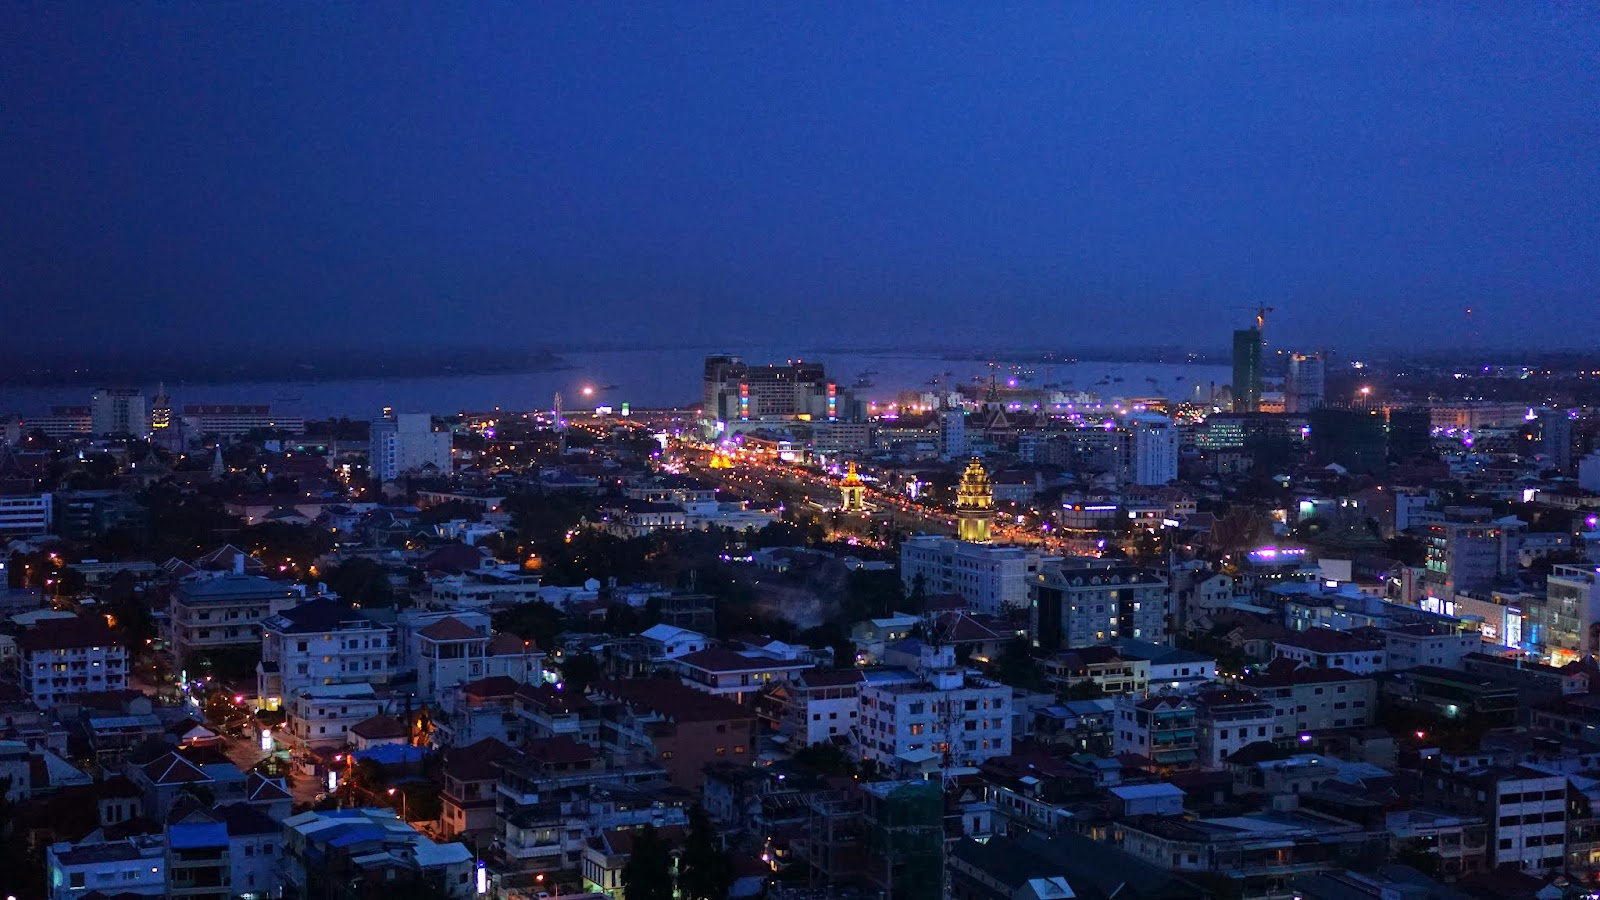 Another view of Phnom Penh from the skybar